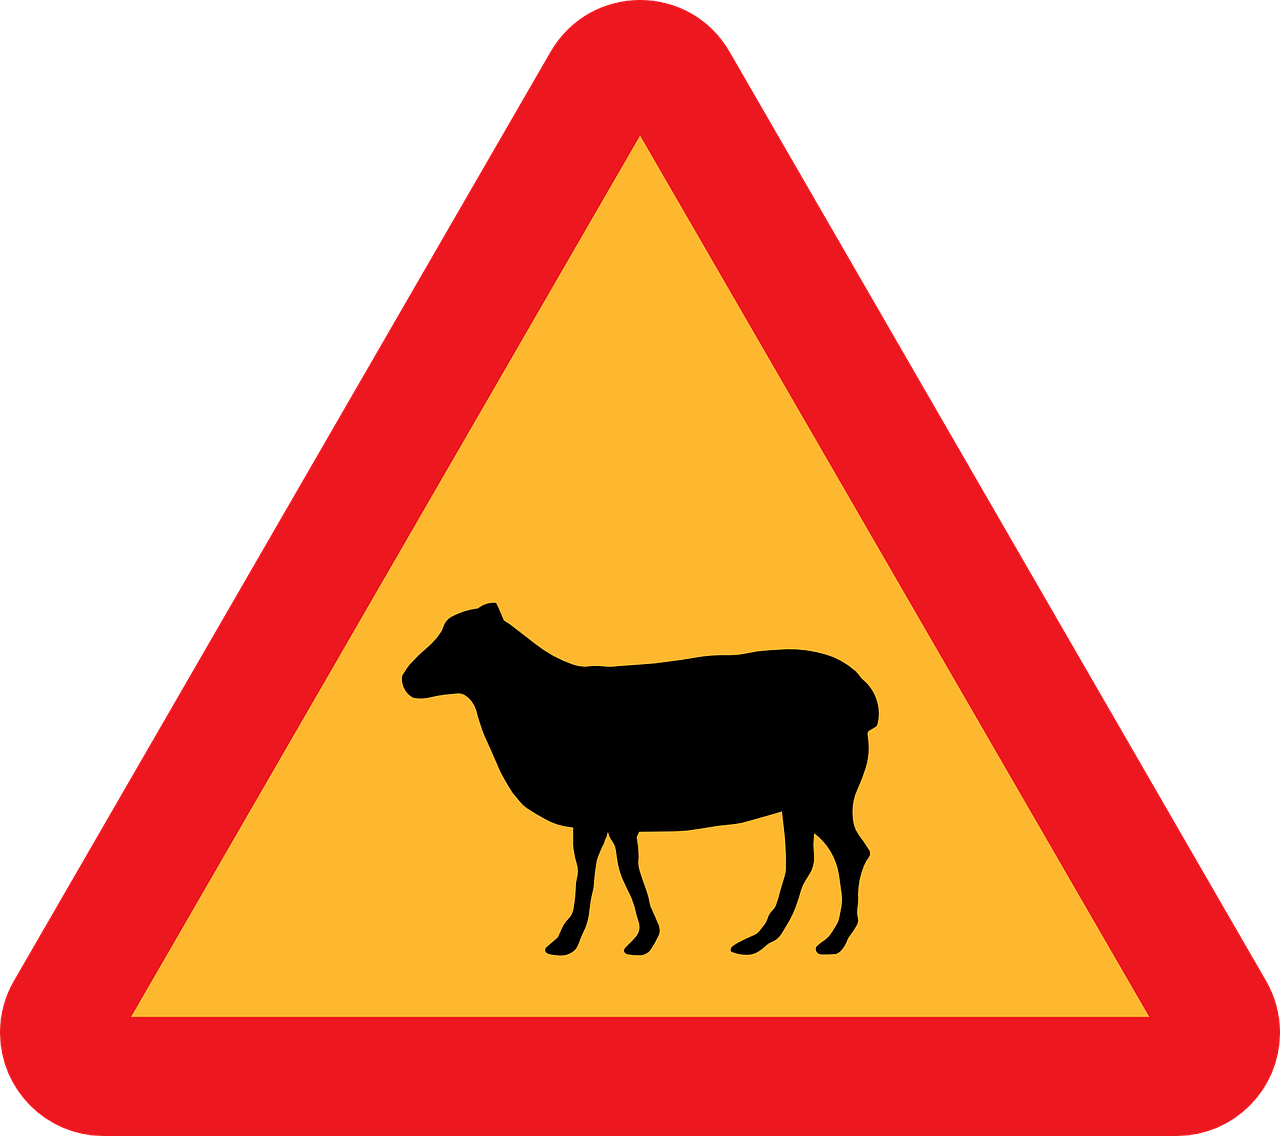 sheep crossing,roadsign,road sign,caution sign,warning sign,highway sign,traffic sign,free vector graphics,free pictures, free photos, free images, royalty free, free illustrations, public domain